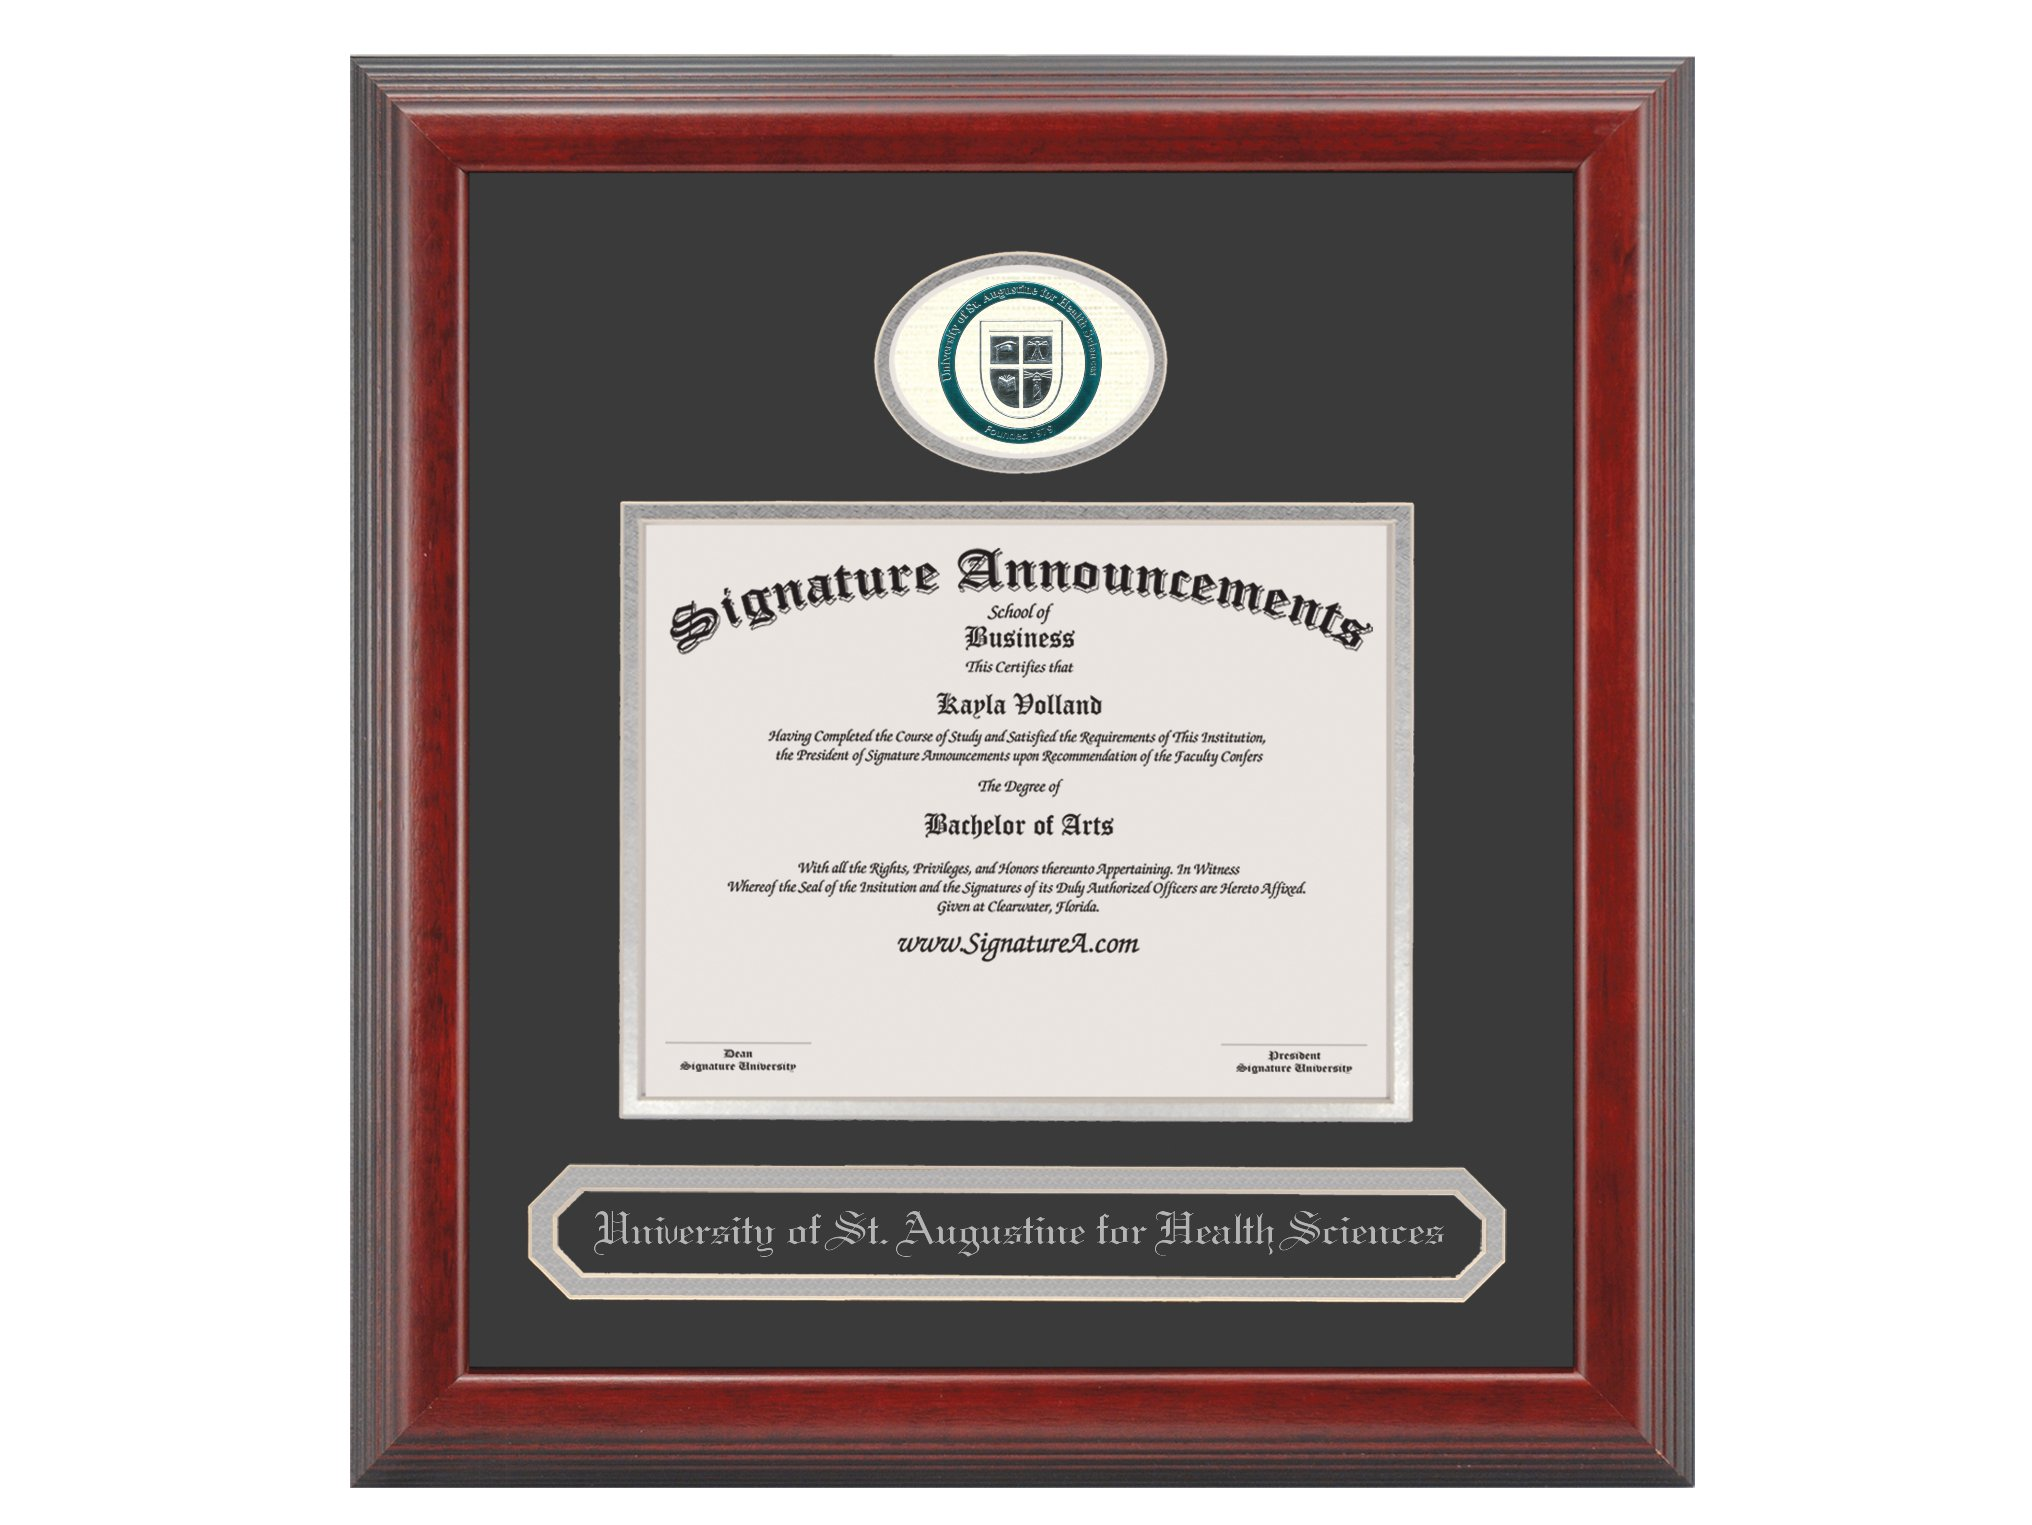 Signature Announcements University-of-St-Augustine-for-Health-Sciences-Master's Undergraduate, Graduate/Professional/Doctor Sculpted Foil Seal & Name Diploma Frame, 16'' x 16'', Cherry